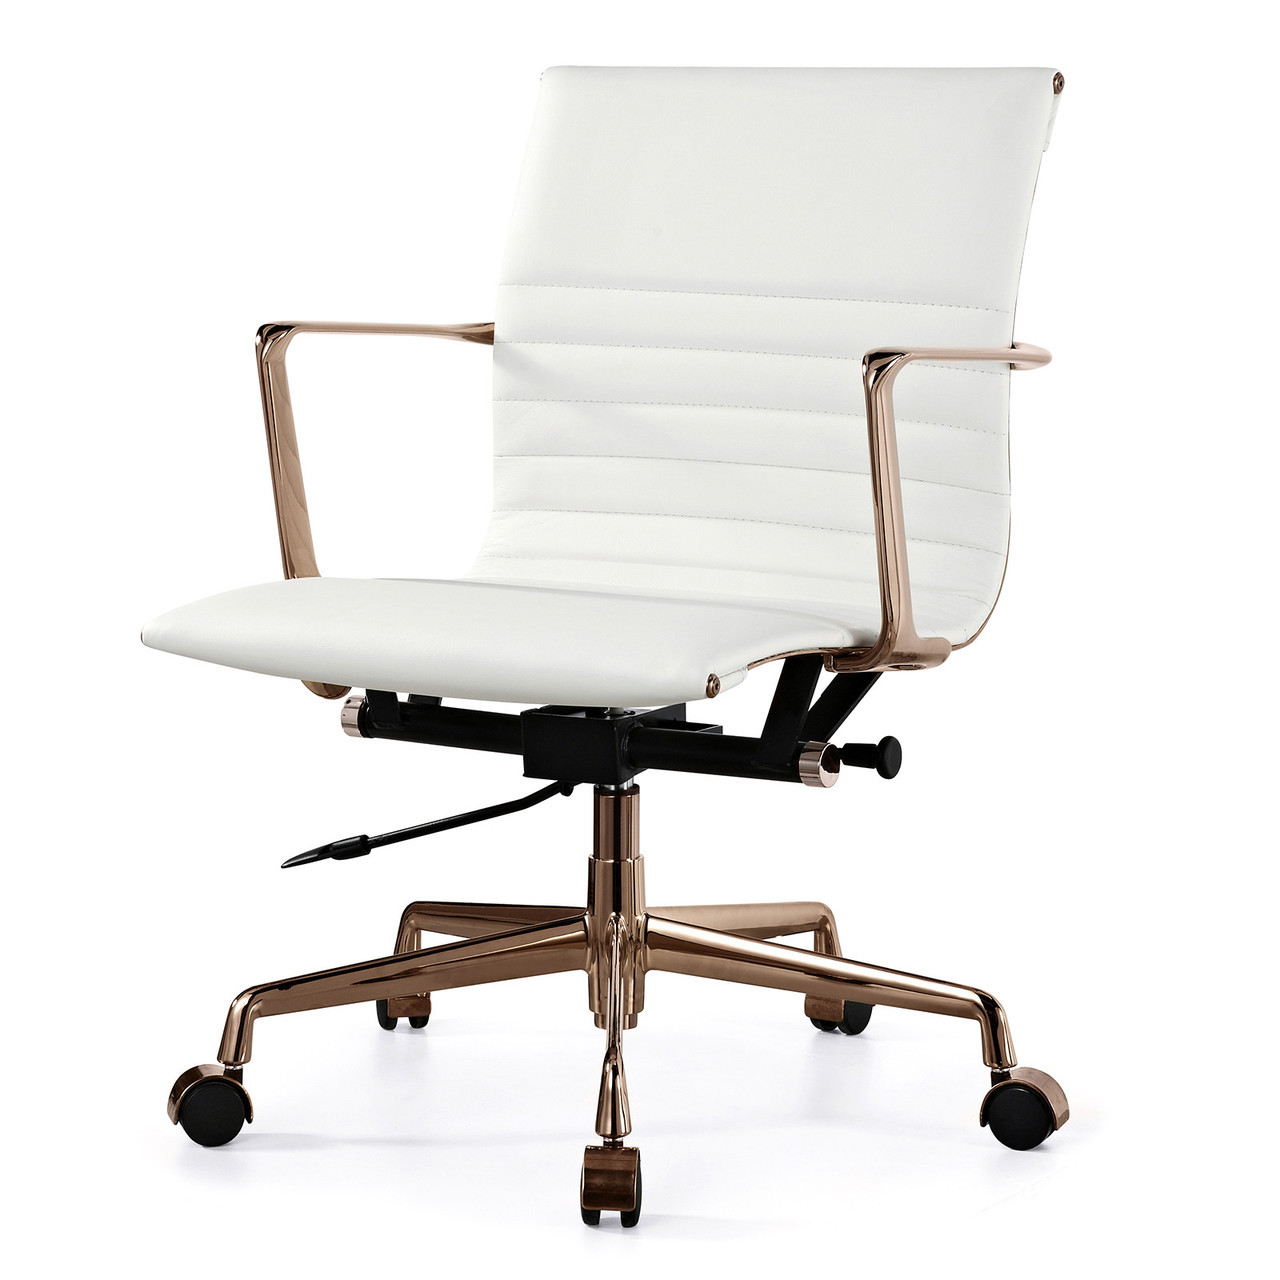 modern white desk chair swivel van italian leather 43 gold m346 office chairs